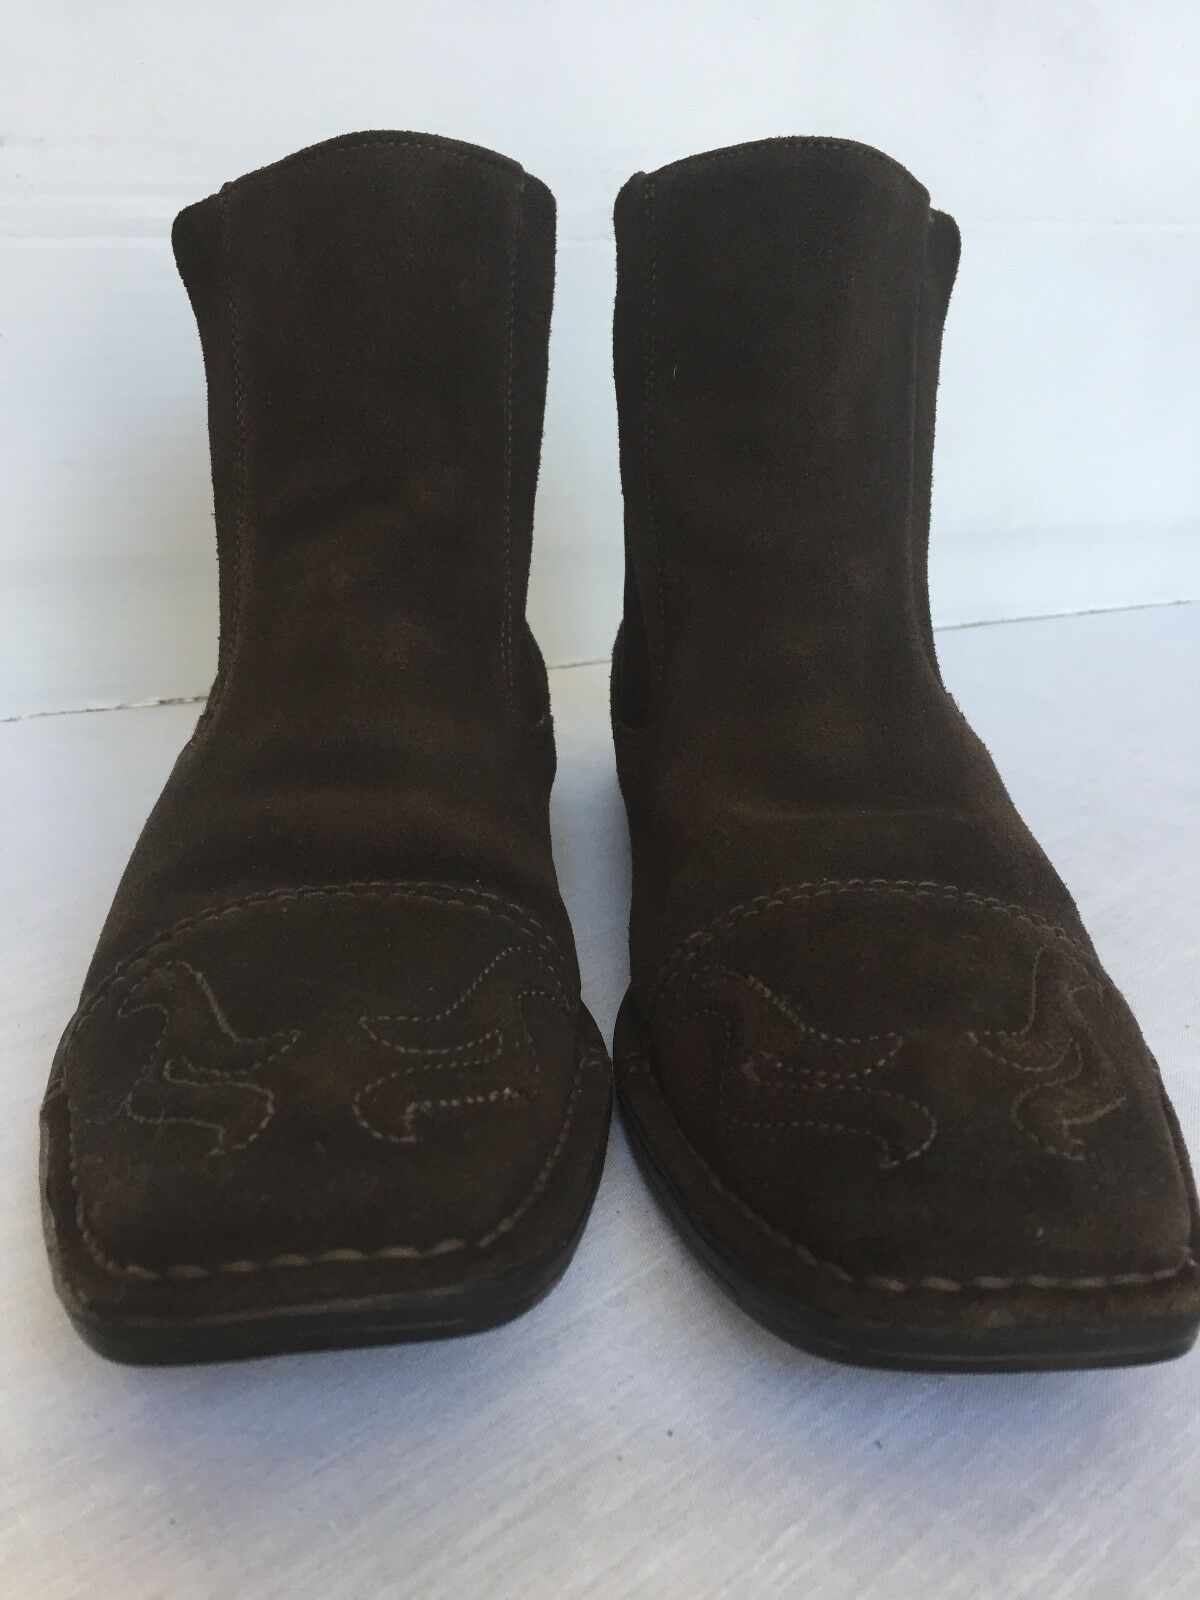 GUESS by Size MARCIANO Men's Dark Tanned Suede Leather Boots Size by 9 M US 916da6